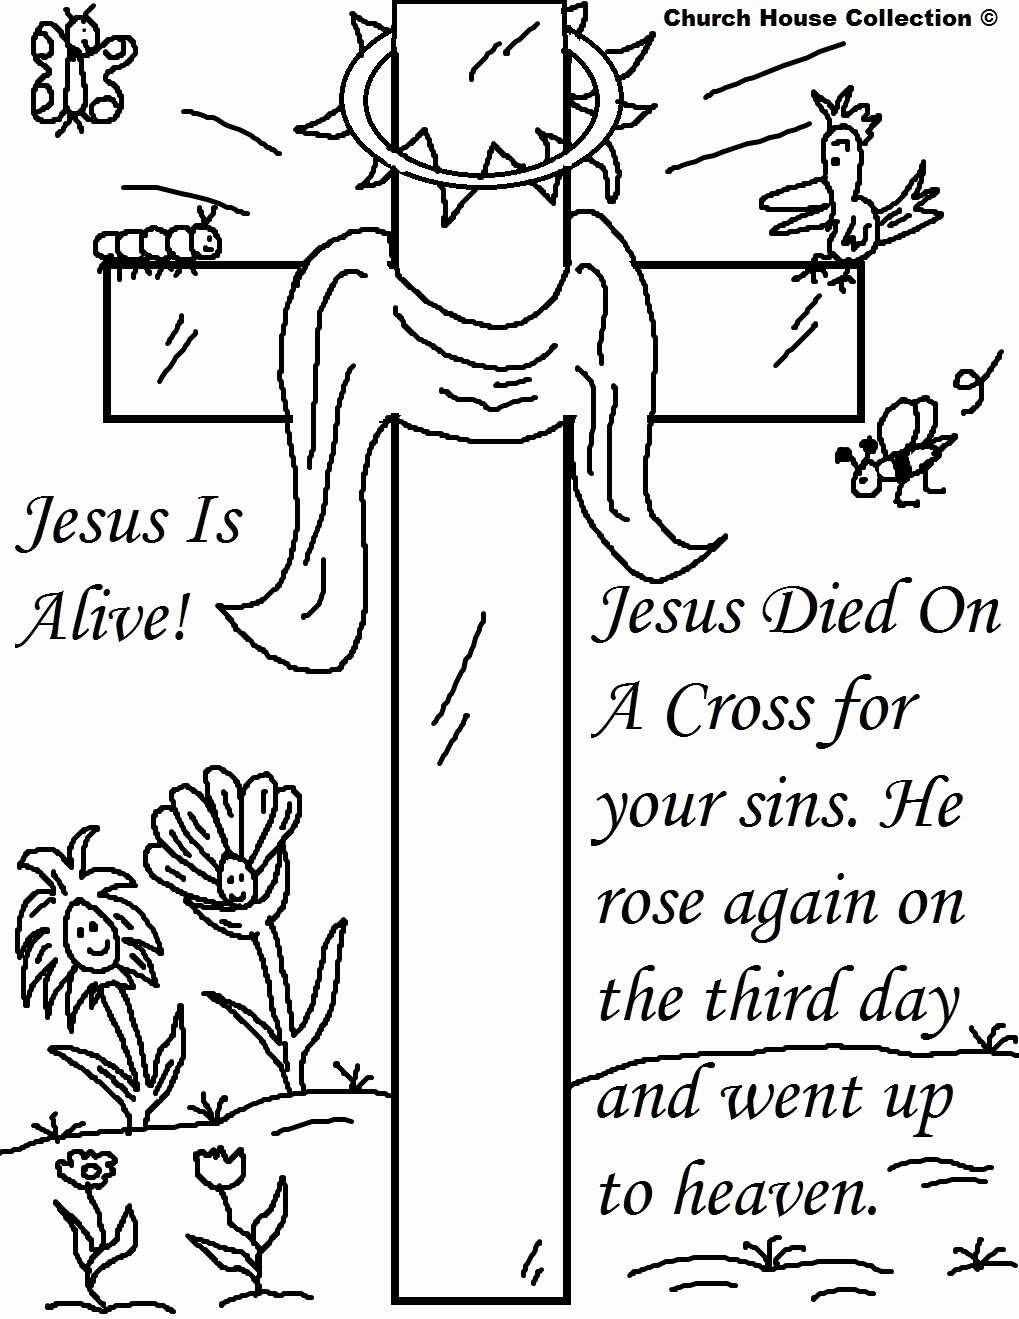 Christian Easter Worksheets for Preschoolers Inspirational Religious Easter Coloring Free Activity Printables Catholic